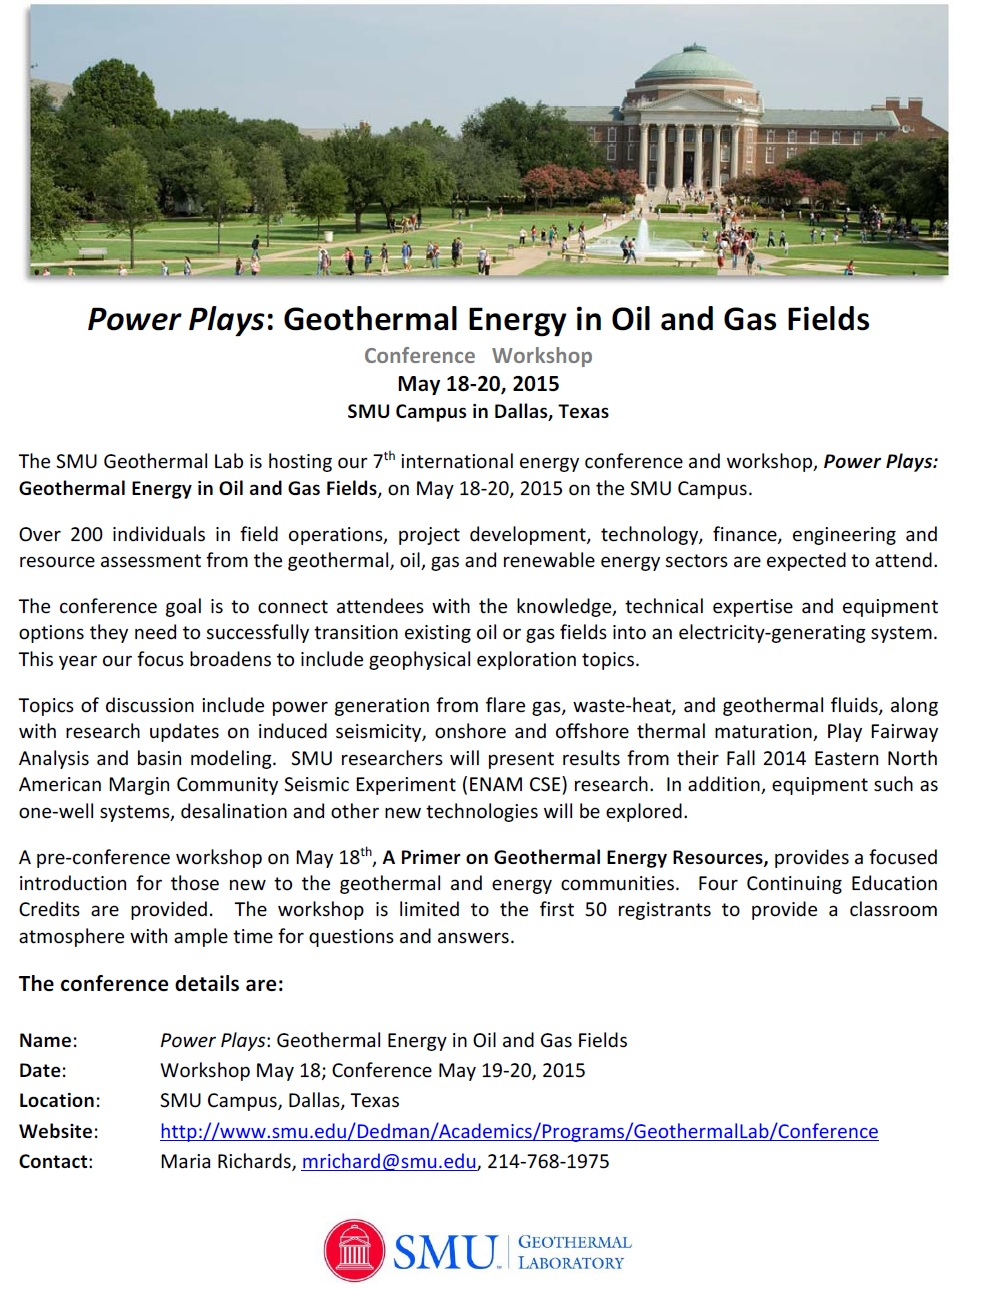 SMU Power Plays Geothermal Energy in Oil and Gas Fields.jpg